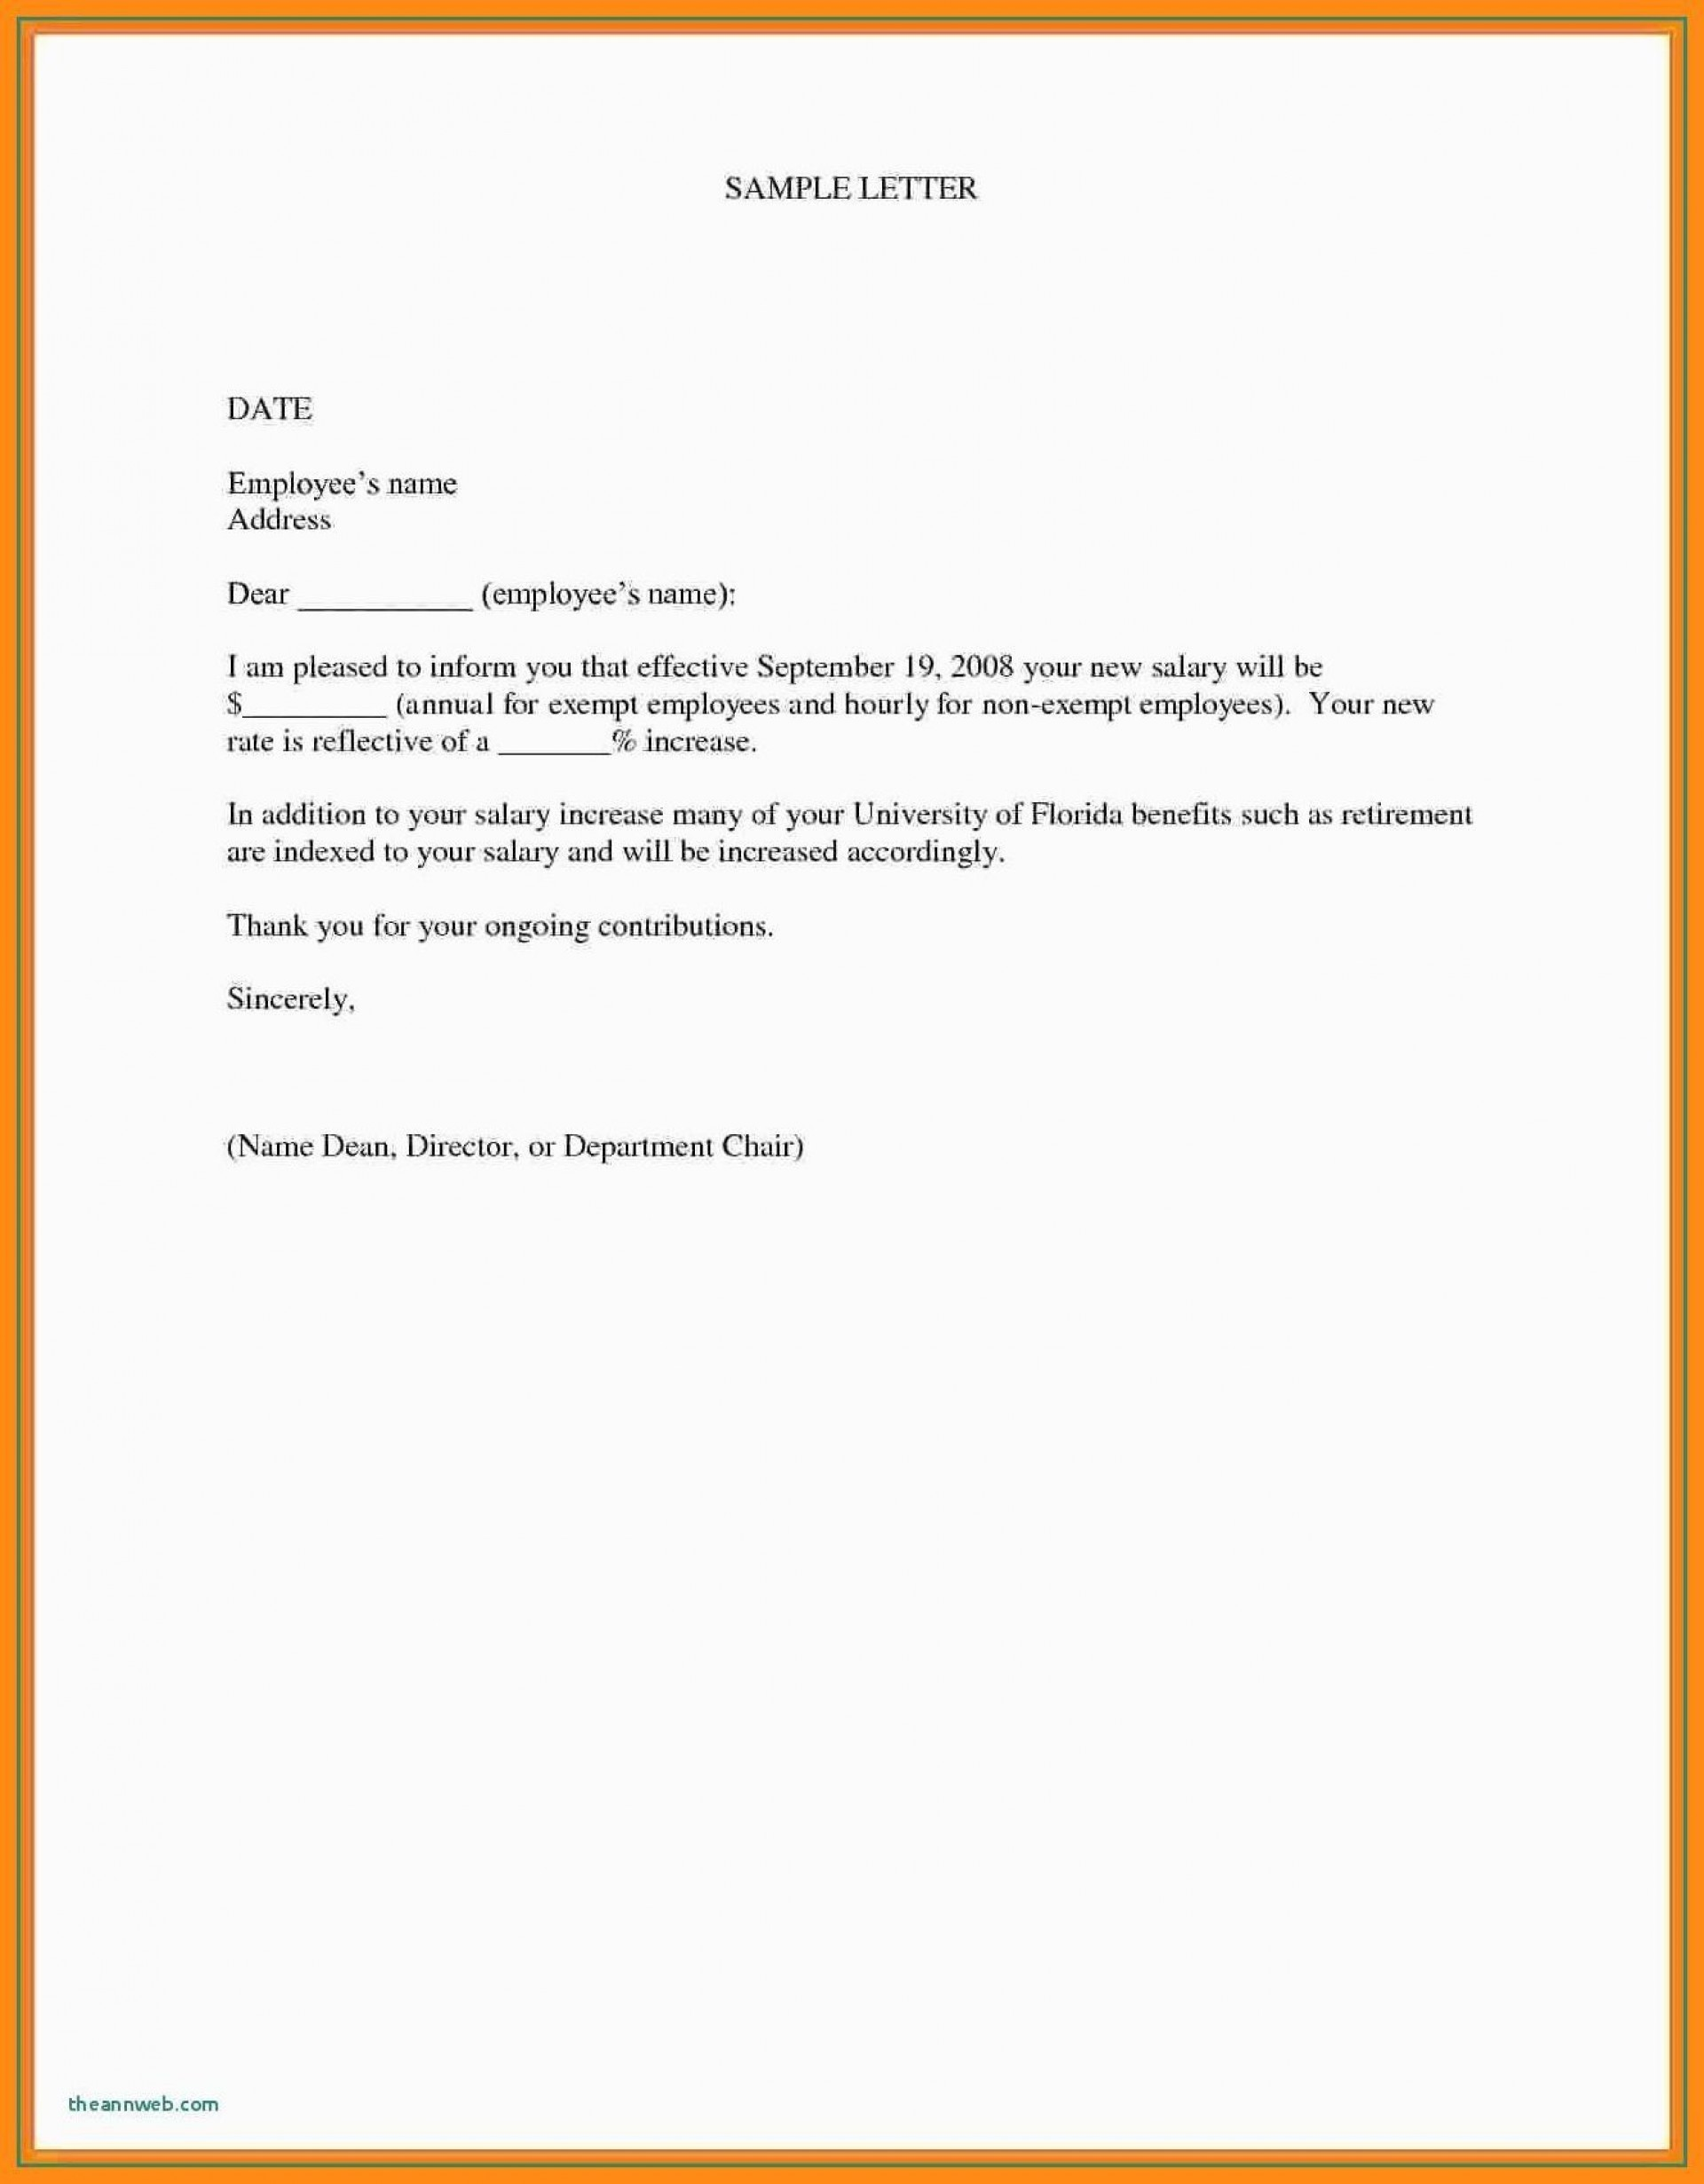 000 Marvelou Salary Increase Letter Template Design  From Employer To Employee Australia No For1920